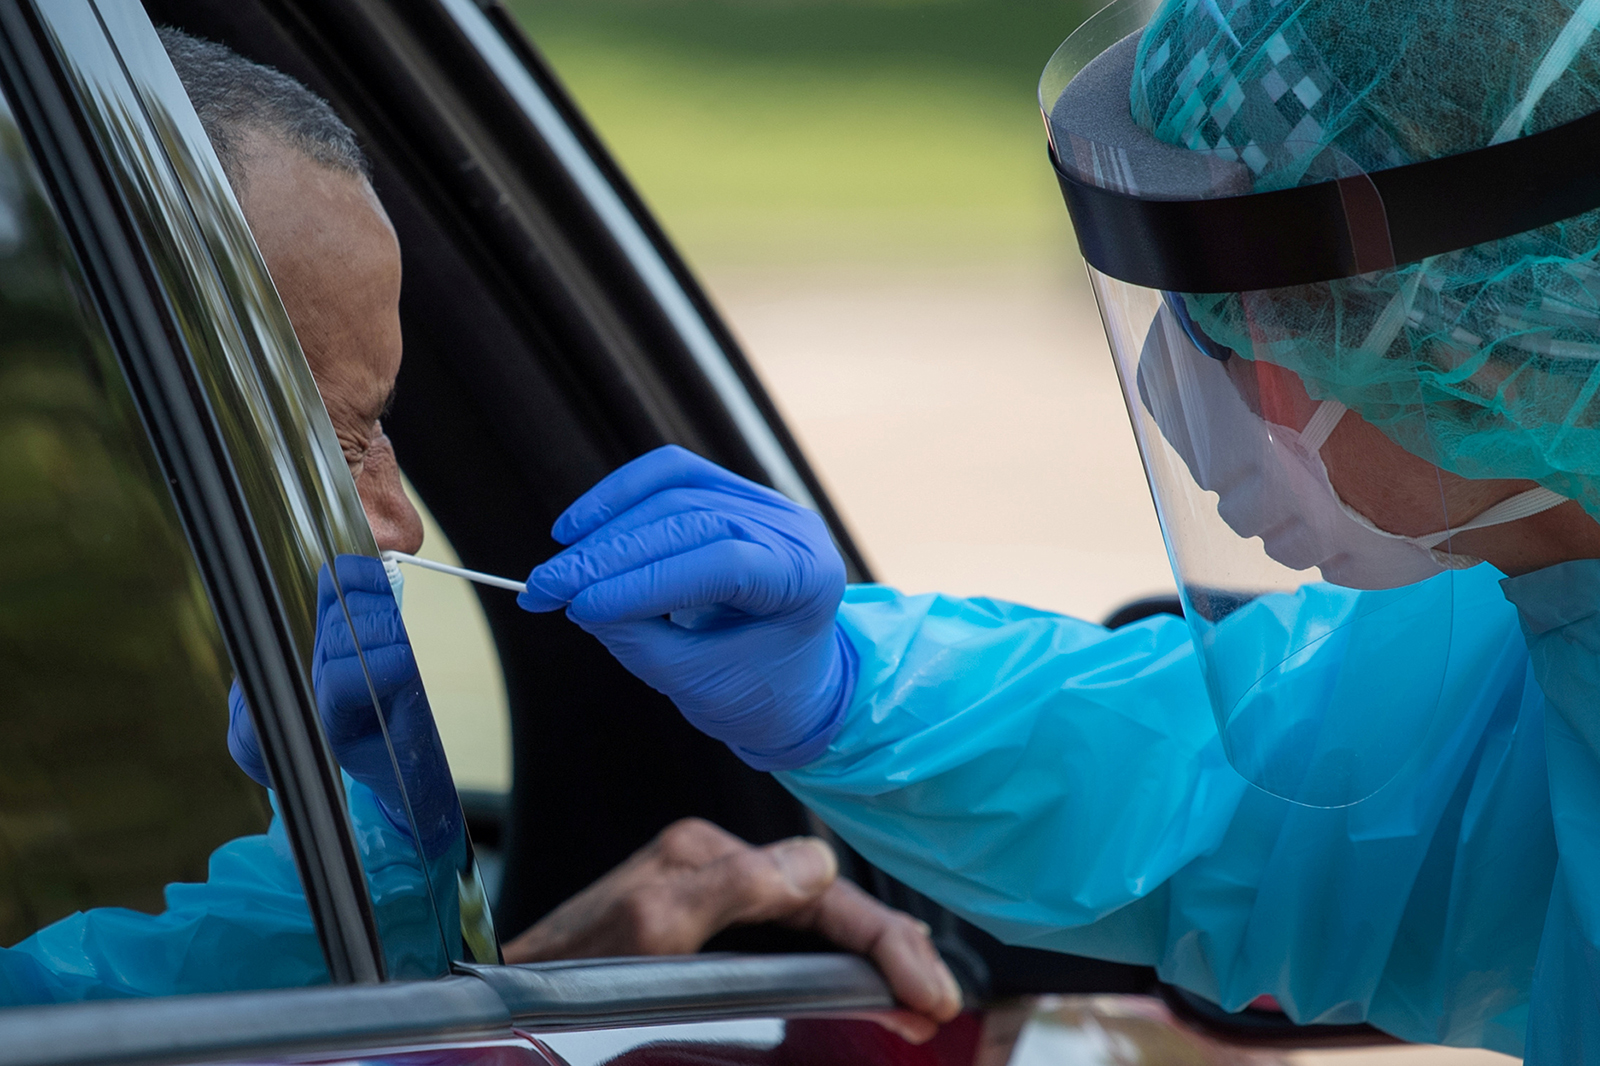 A healthcare worker uses a swab to test a man at a Covid-19 drive-in testing location in Houston, Texas.